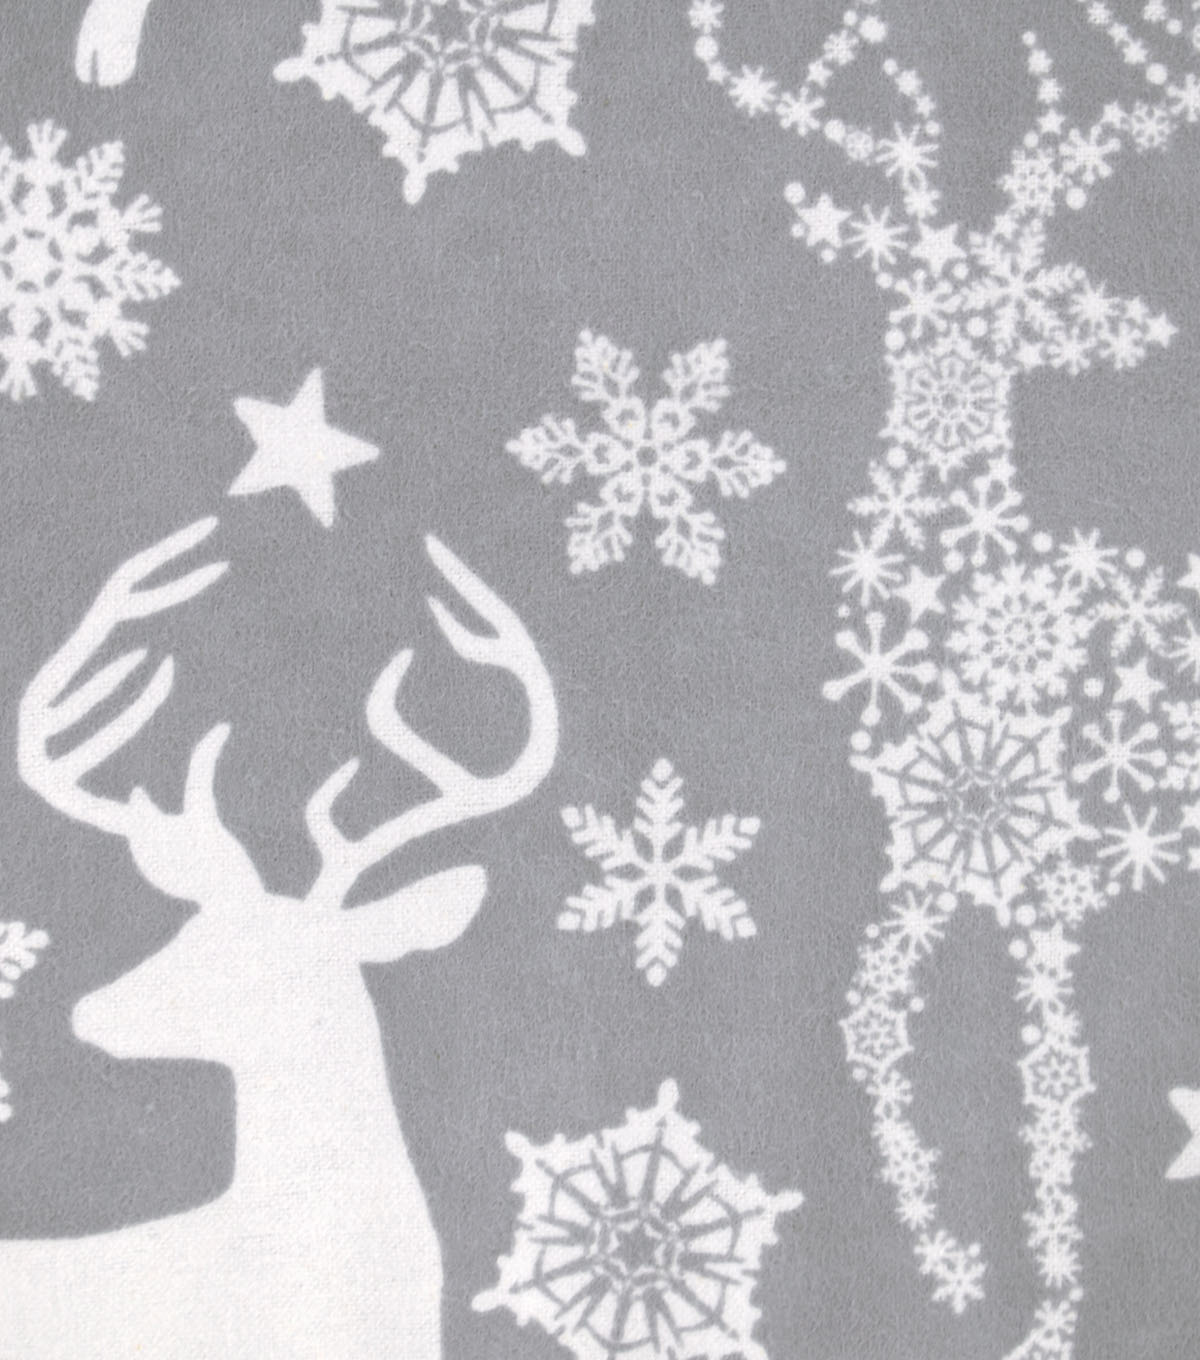 Snuggle Flannel Fabric -Snowflake Deer Gray